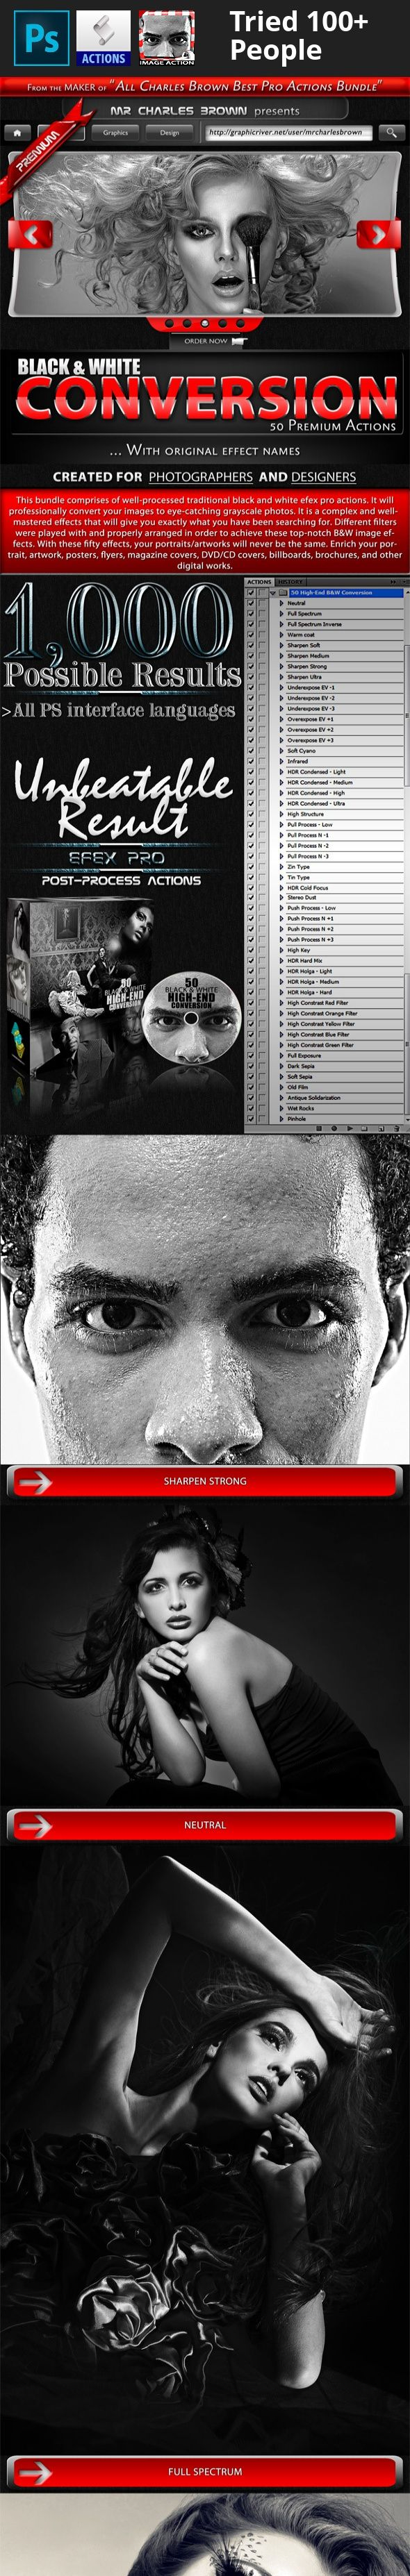 action, addon, b&w, black and white, black and white action, black and white conversion, black and white effects, black and white photos, conversion, efex, effects, Graphicriver Image Action, Graphicriver image effects, grayscale, high-end, High-end B&W conversion, legendary, photo action, photo effects, photoshop image action, Photoshop Image effects, premium, premium image action, premium image effects, pro Similar Item: Photographers' 50 Top Secret Actions  Update 1.1 (Please re-downlo...